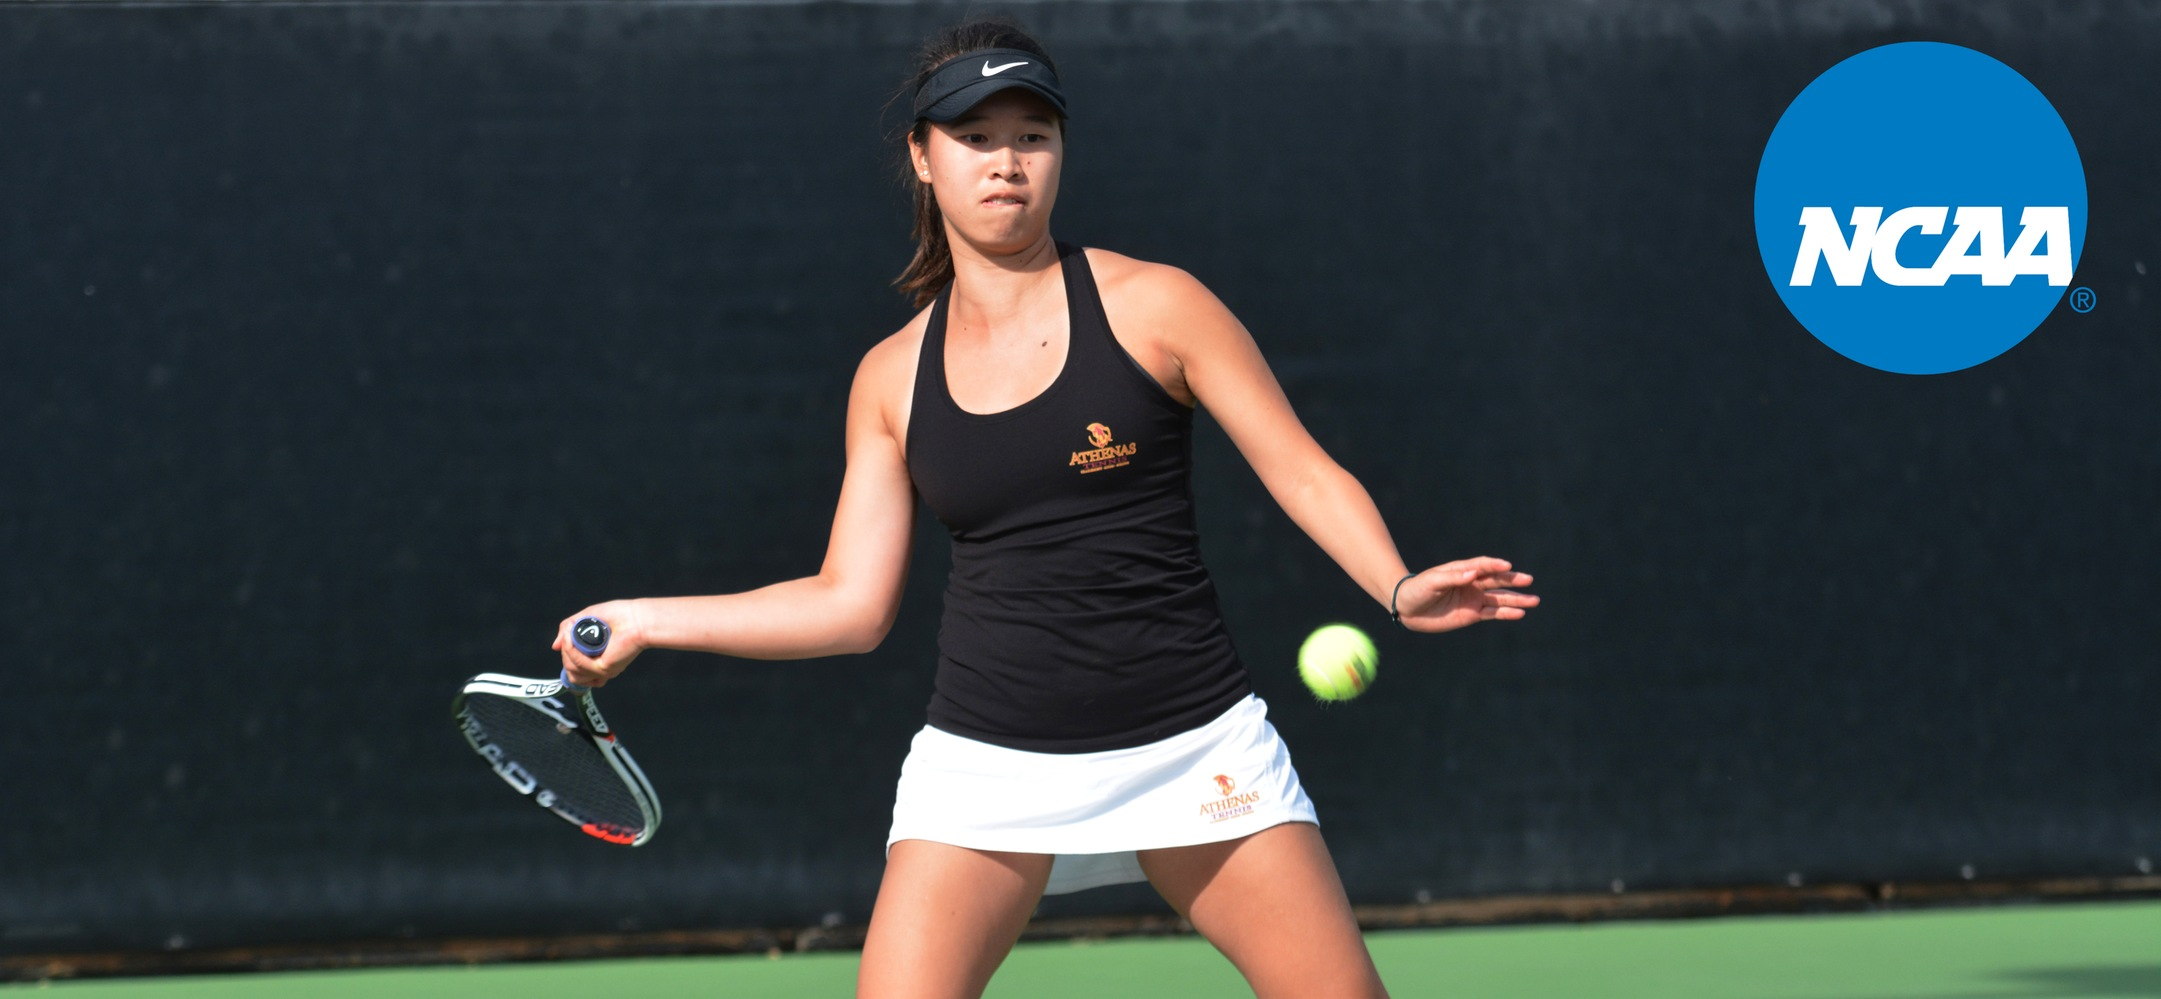 Nicole Tan Earns Nomination for NCAA Woman of the Year Award